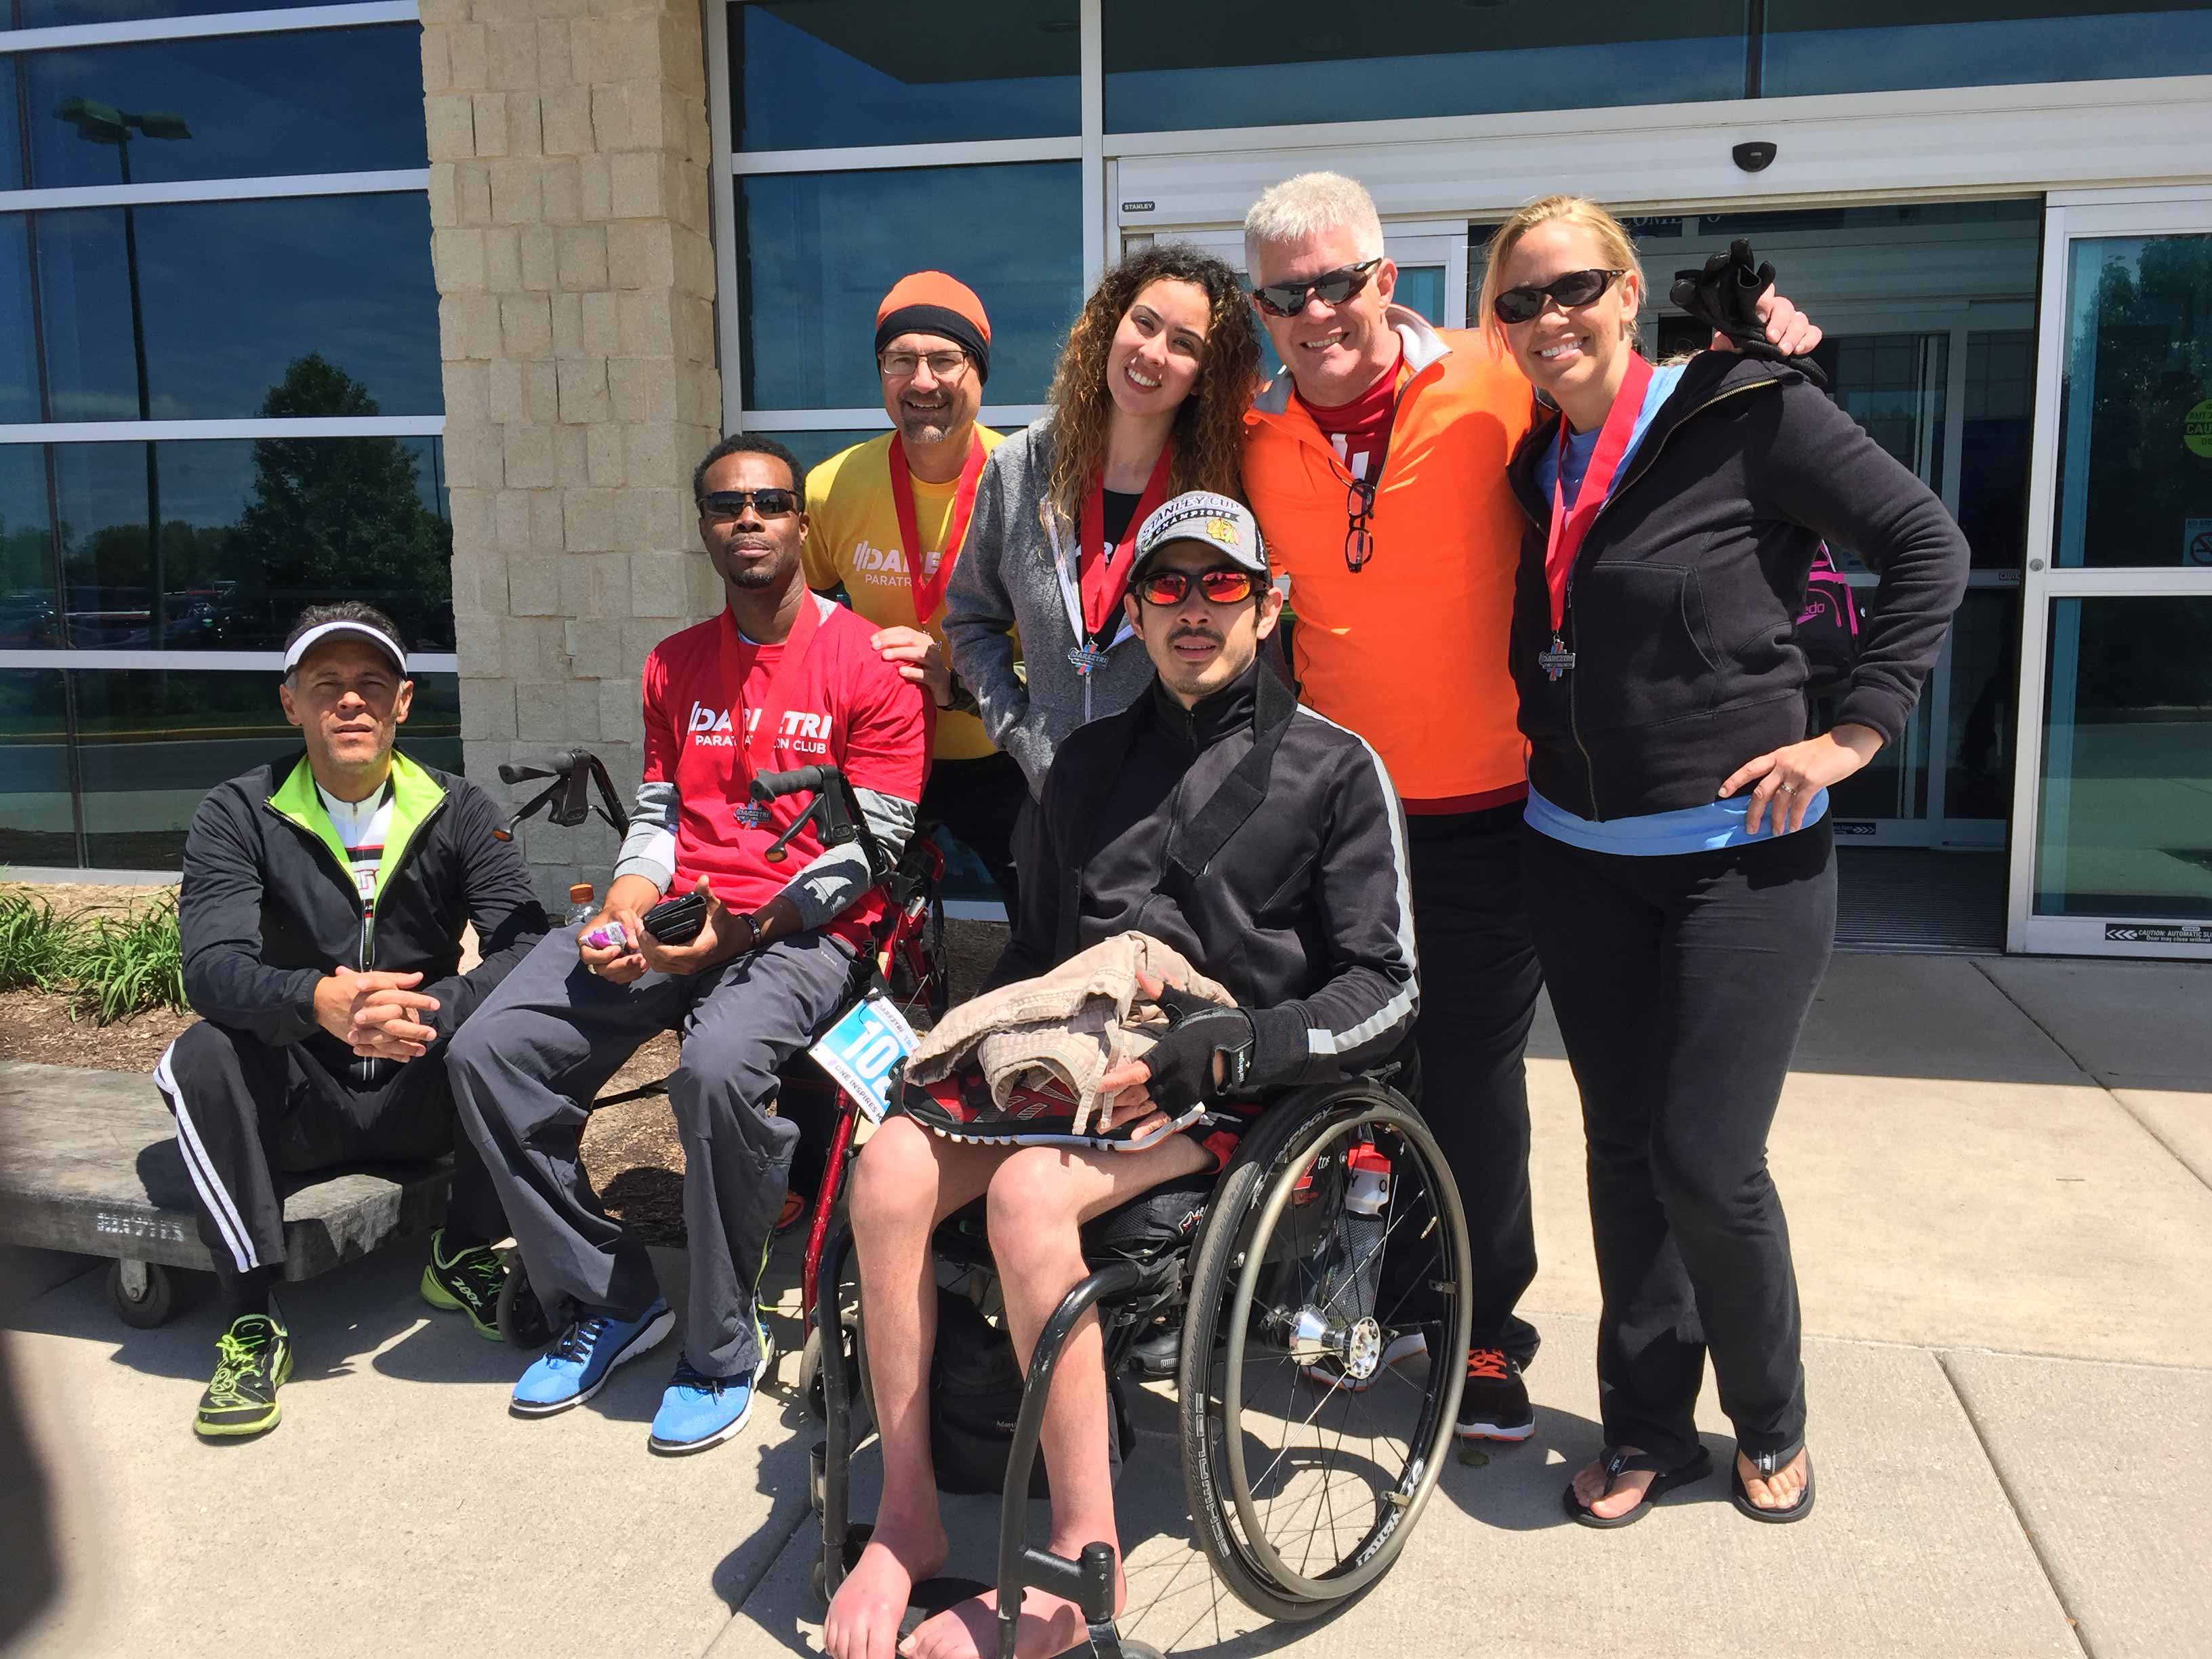 Chad Jerdee, general counsel and chief compliance officer at Accenture, standing second from right, with a group of triathlon participants.